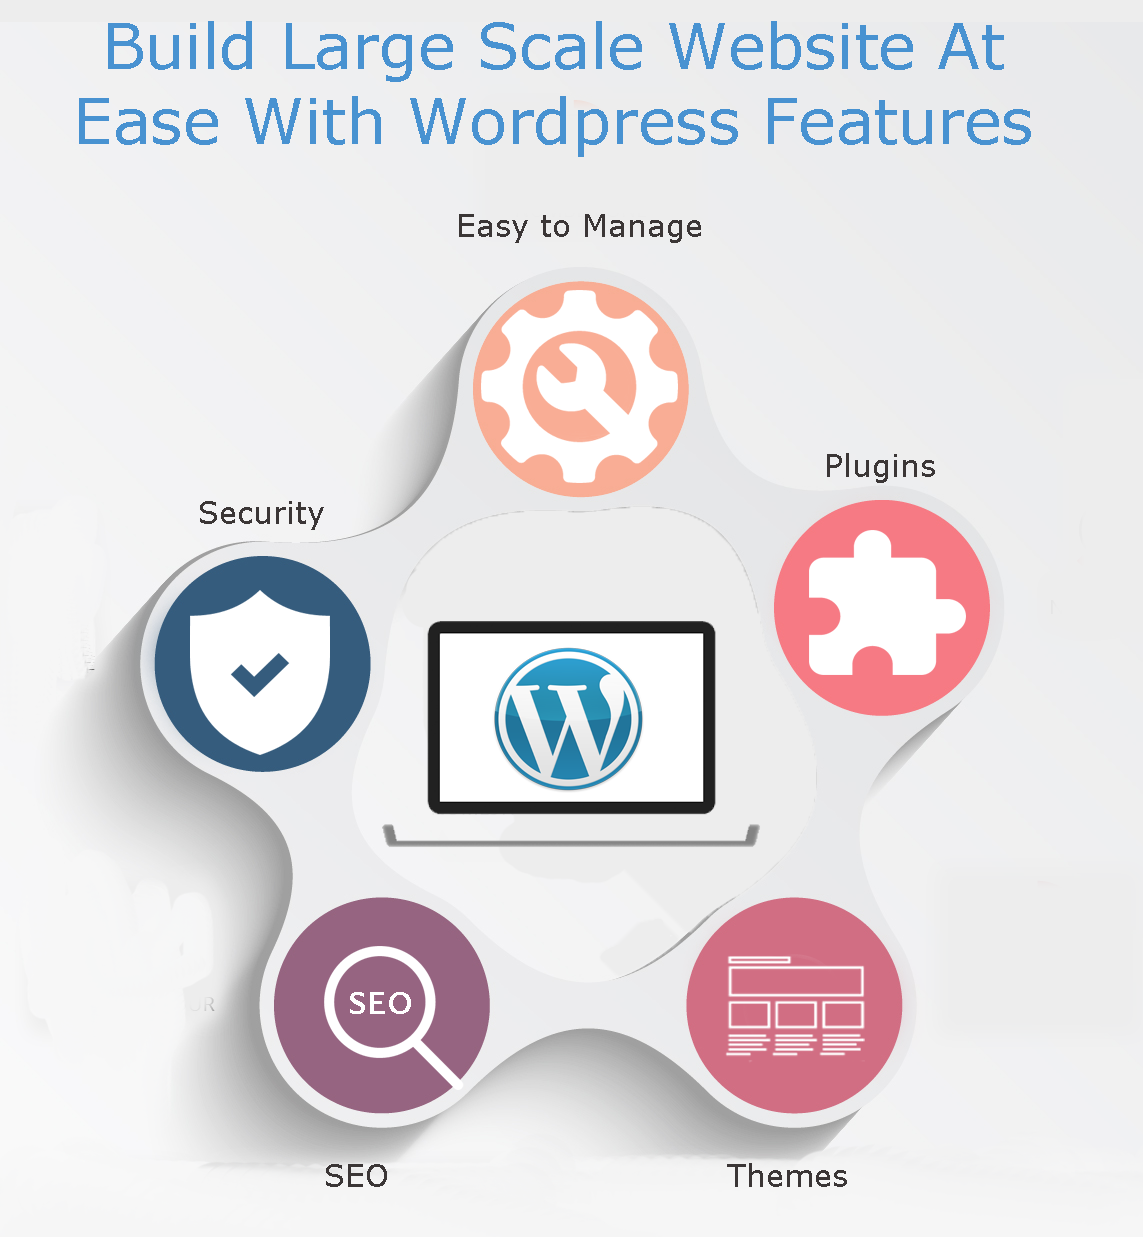 Why you should use WordPress for Large Scale business